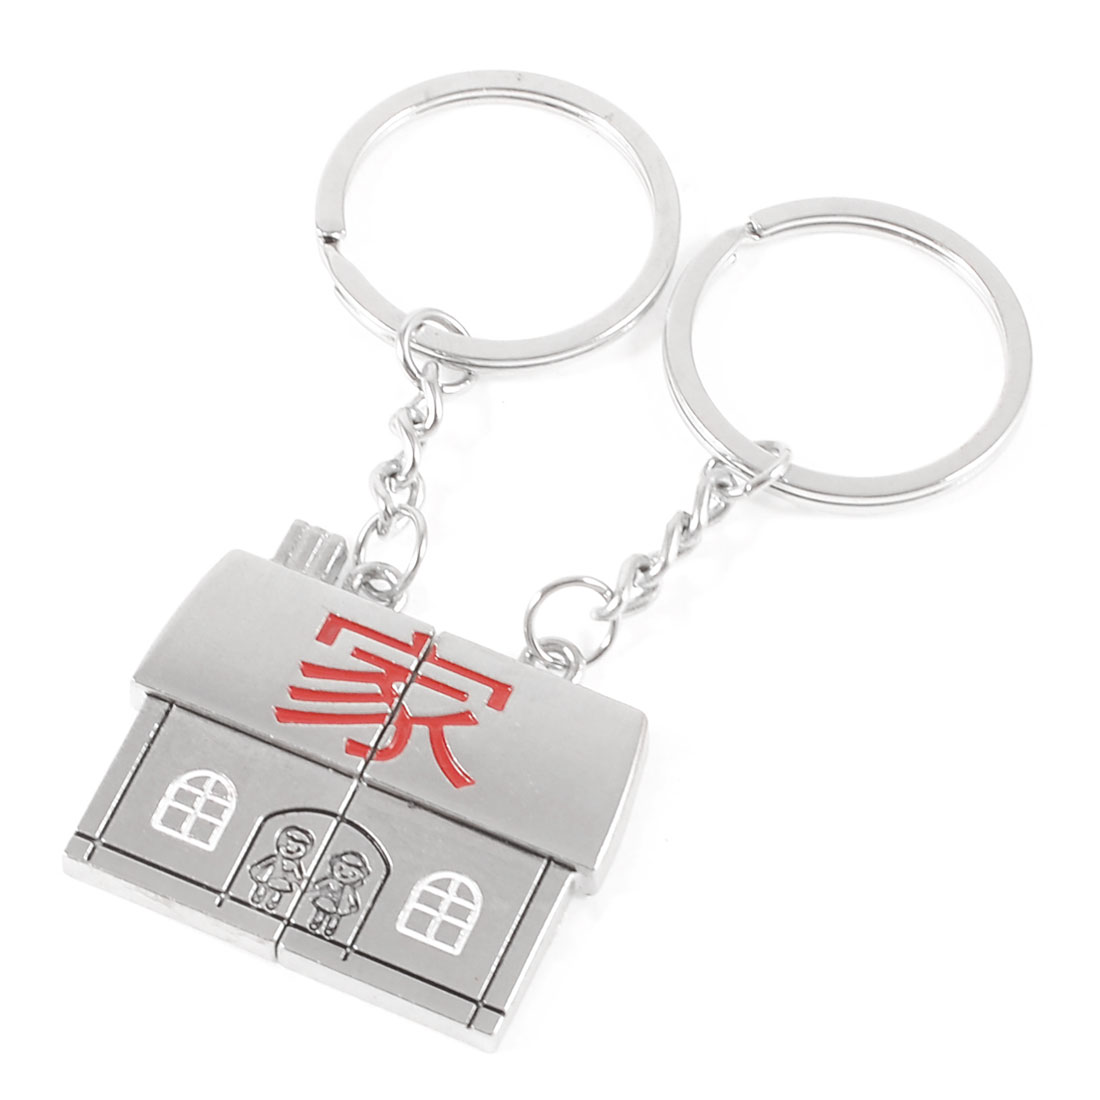 2 Pcs Metal Home Design Pendant Keychain Silver Tone for Lovers Couple